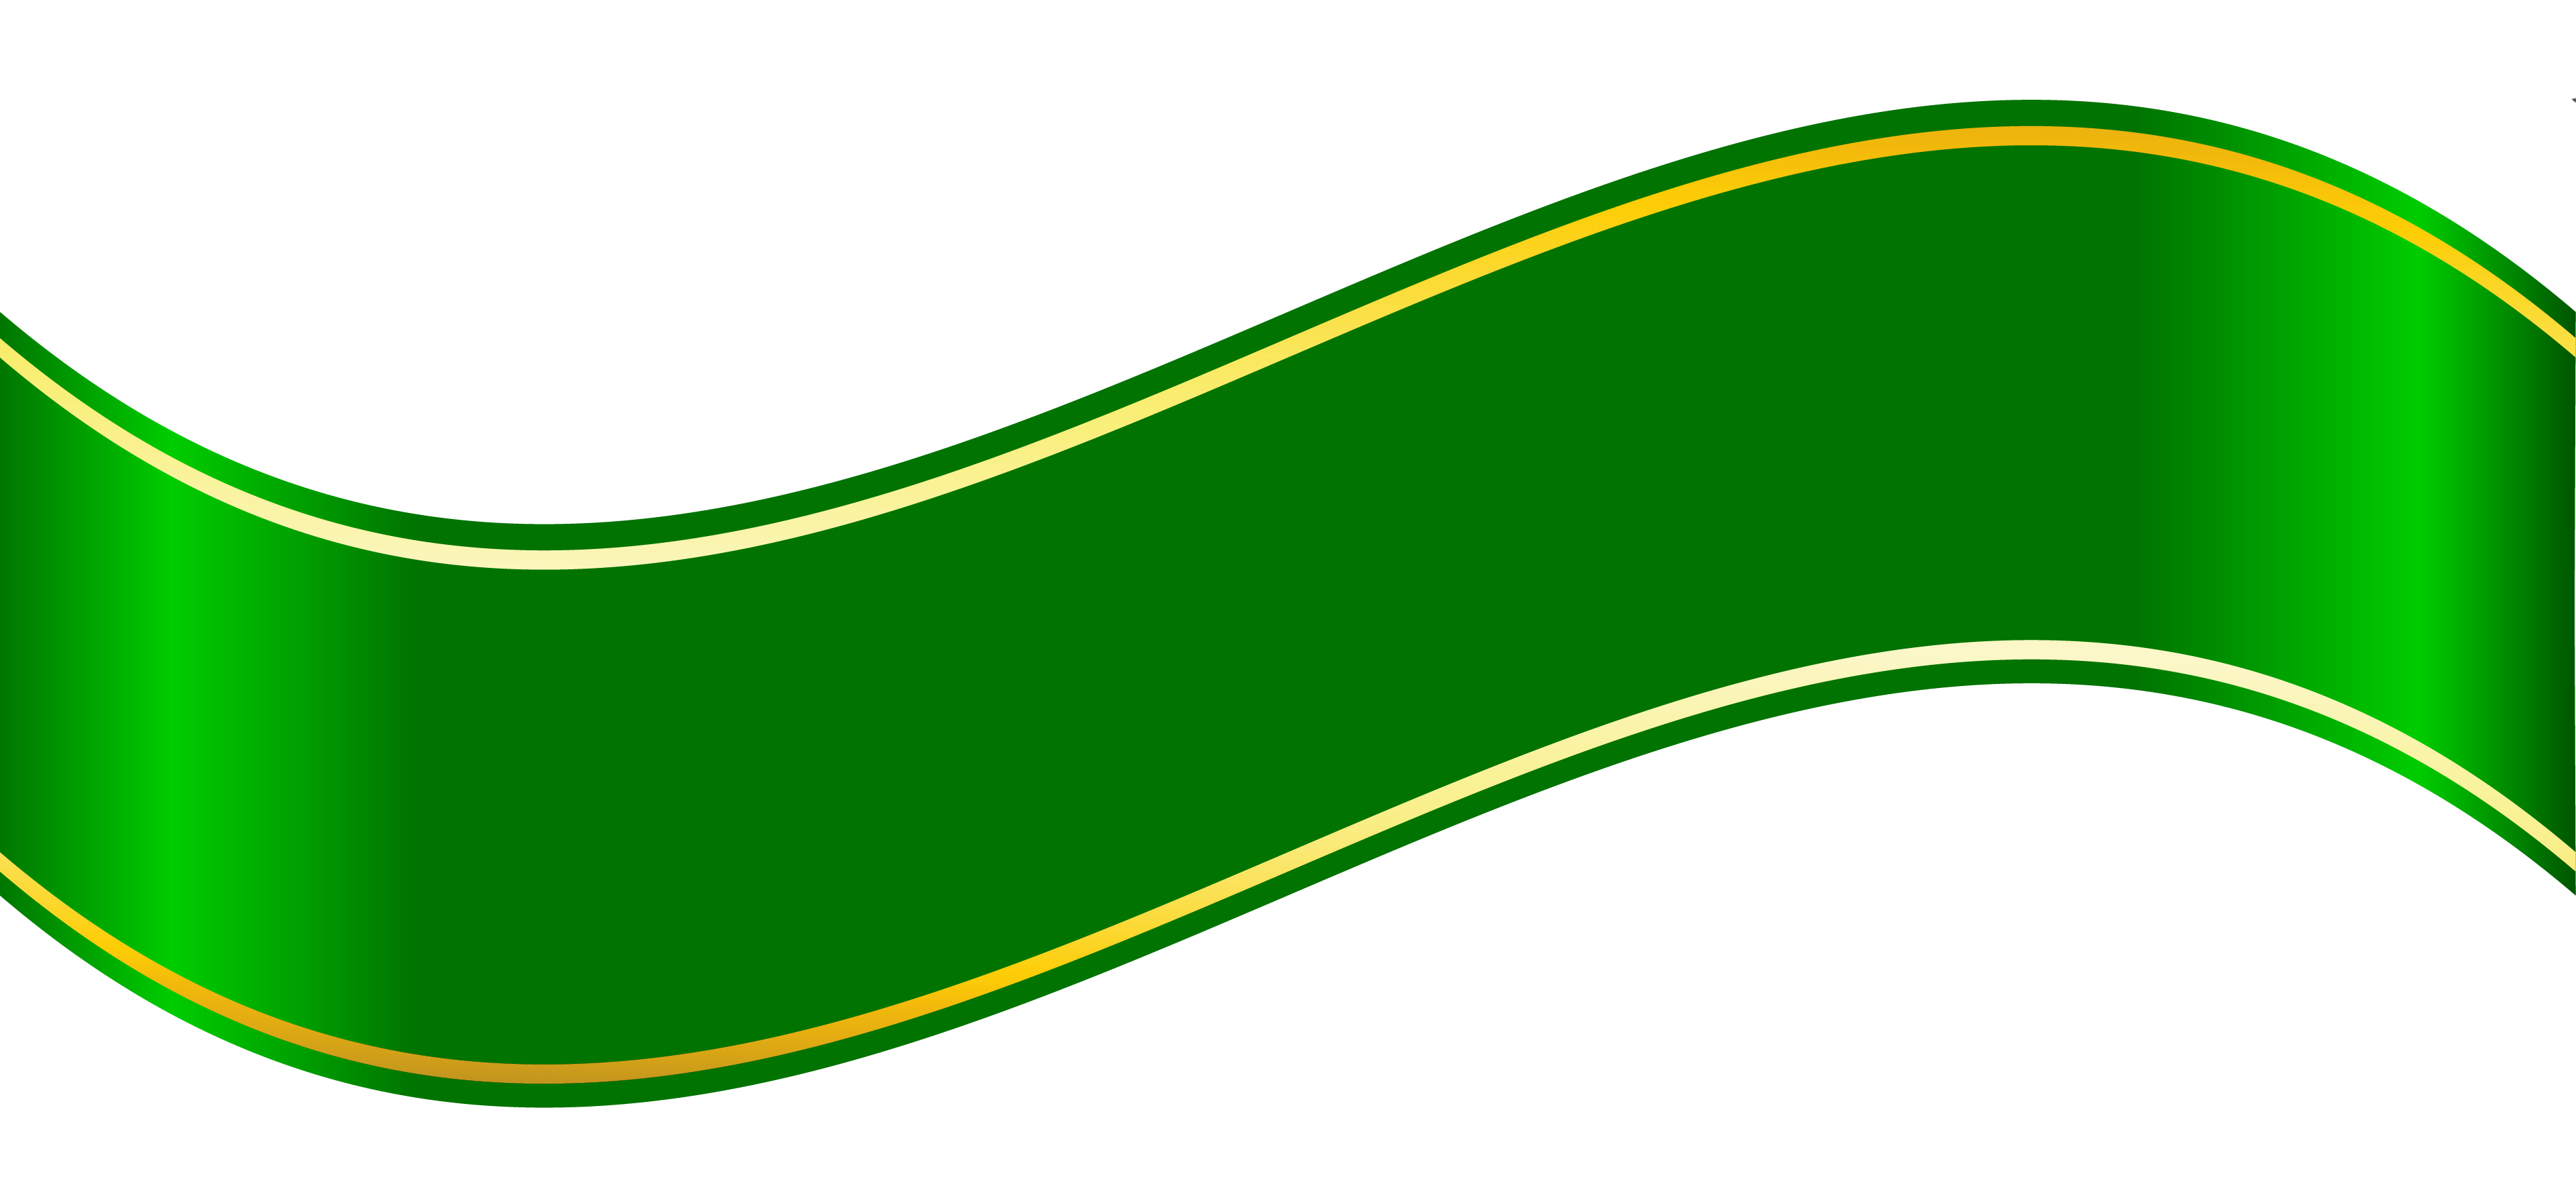 Green banner png gallery. Banners clipart logo